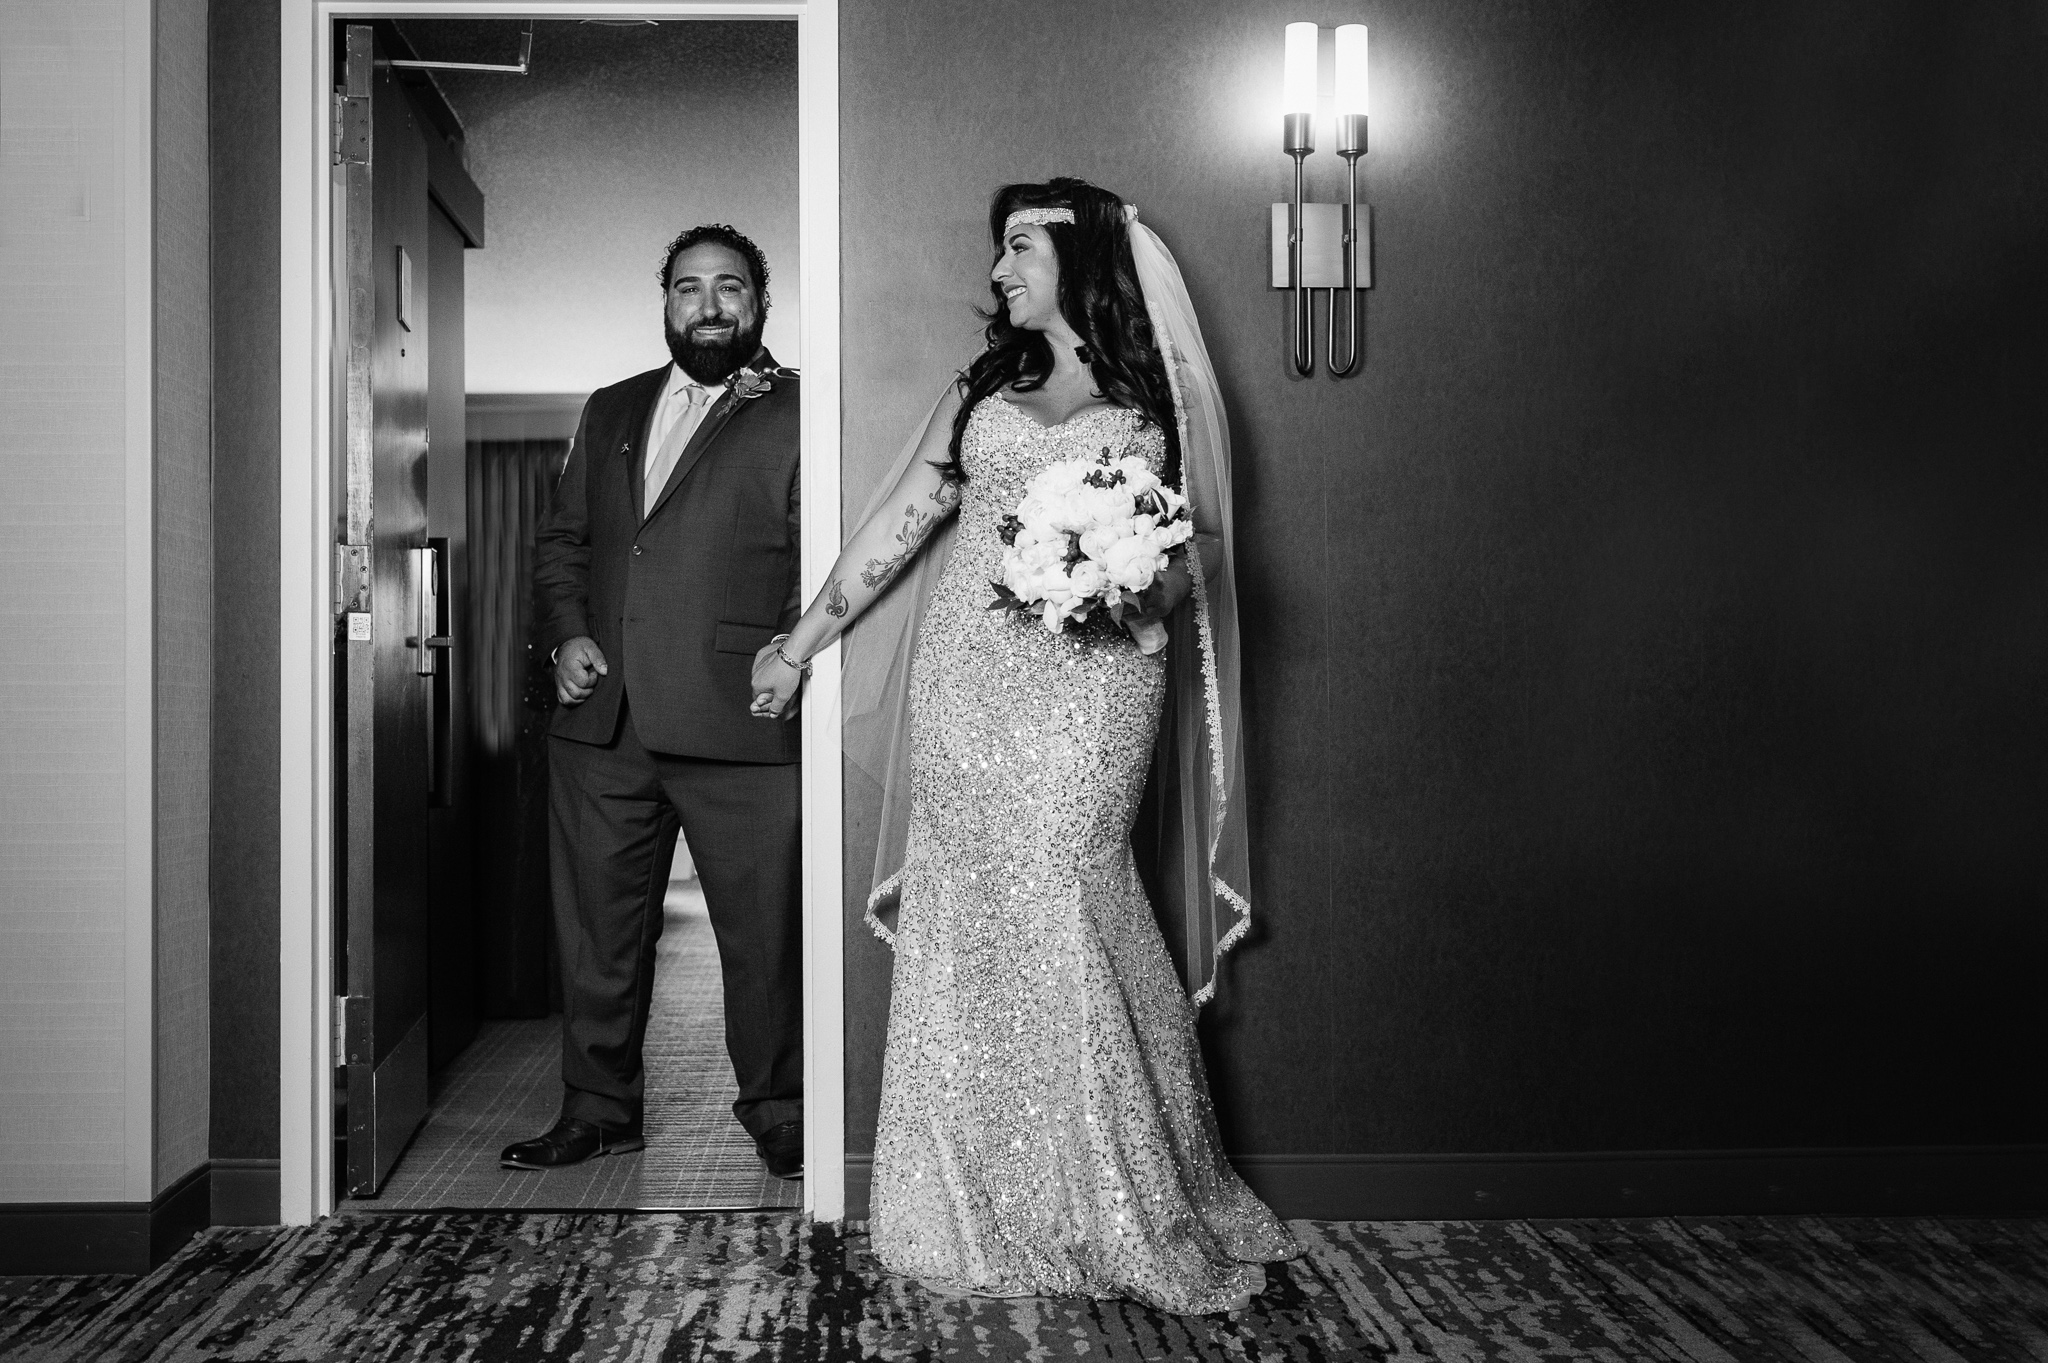 bride and groom before the wedding by Erin Borzellino in Tarrytown, NY